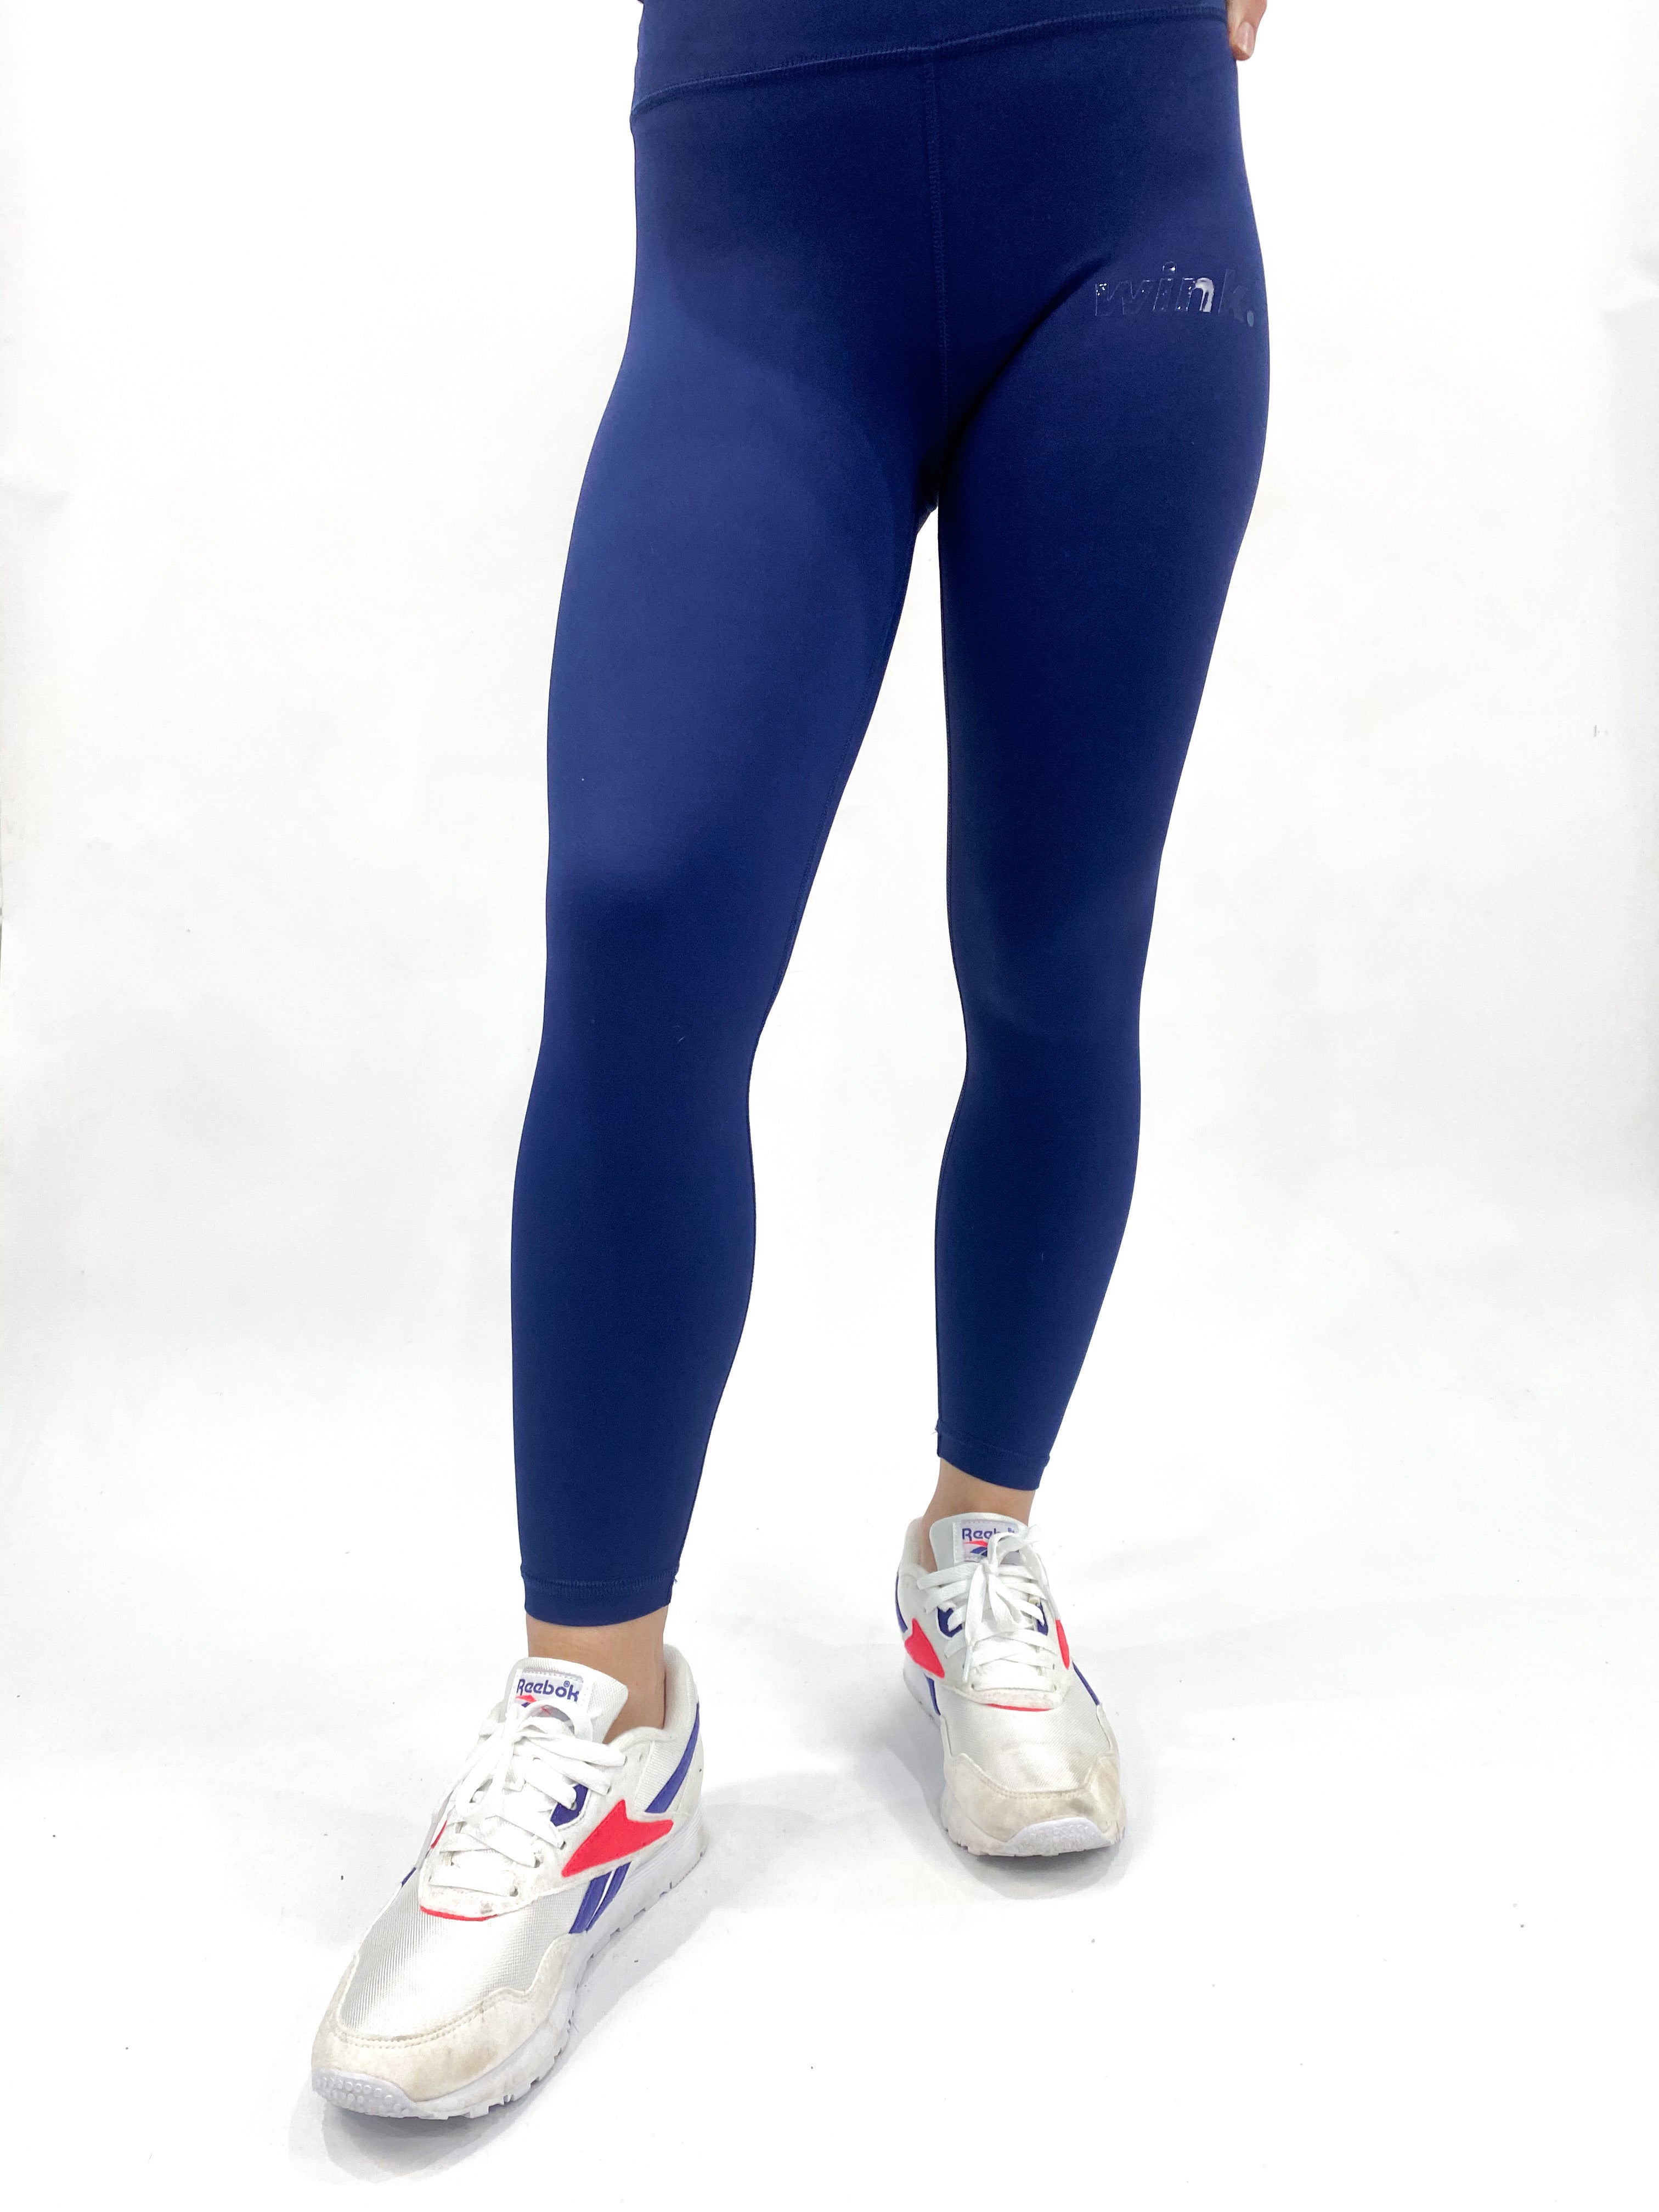 Shuri Performance Legging - Navy